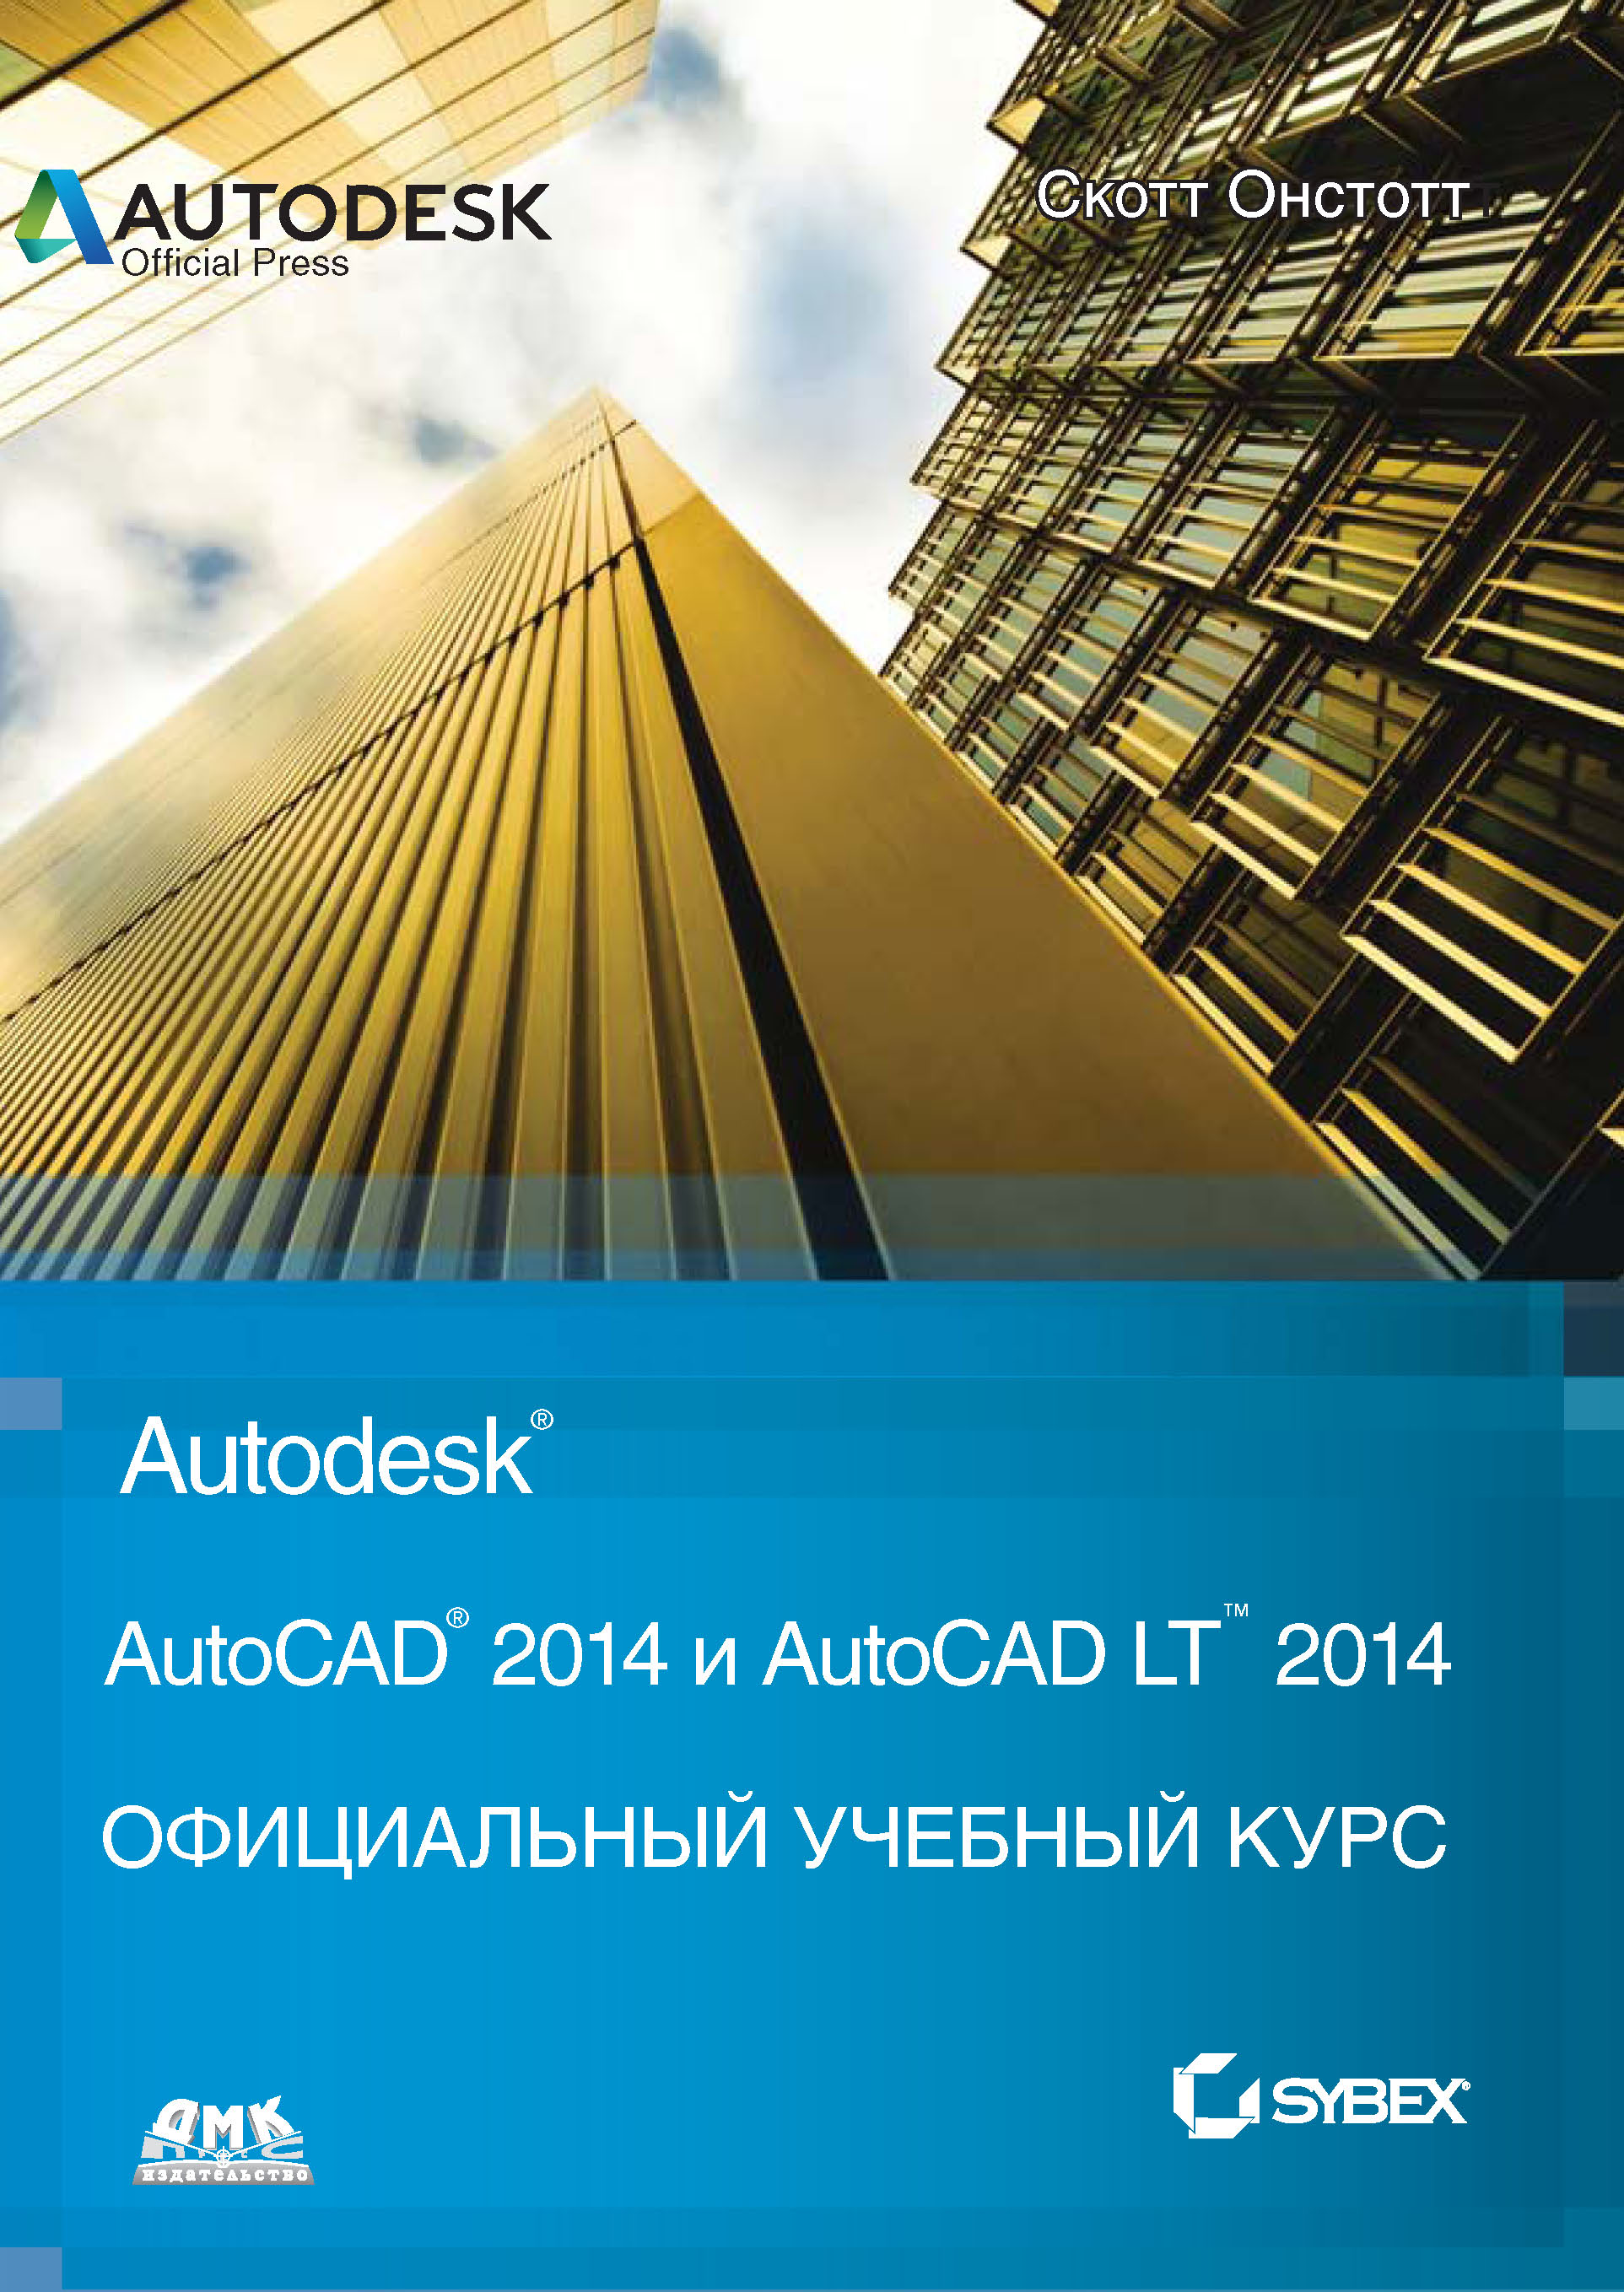 Скотт Онстотт AutoCAD® 2014 и AutoCAD LT® 2014 george omura mastering autocad 2014 and autocad lt 2014 autodesk official press